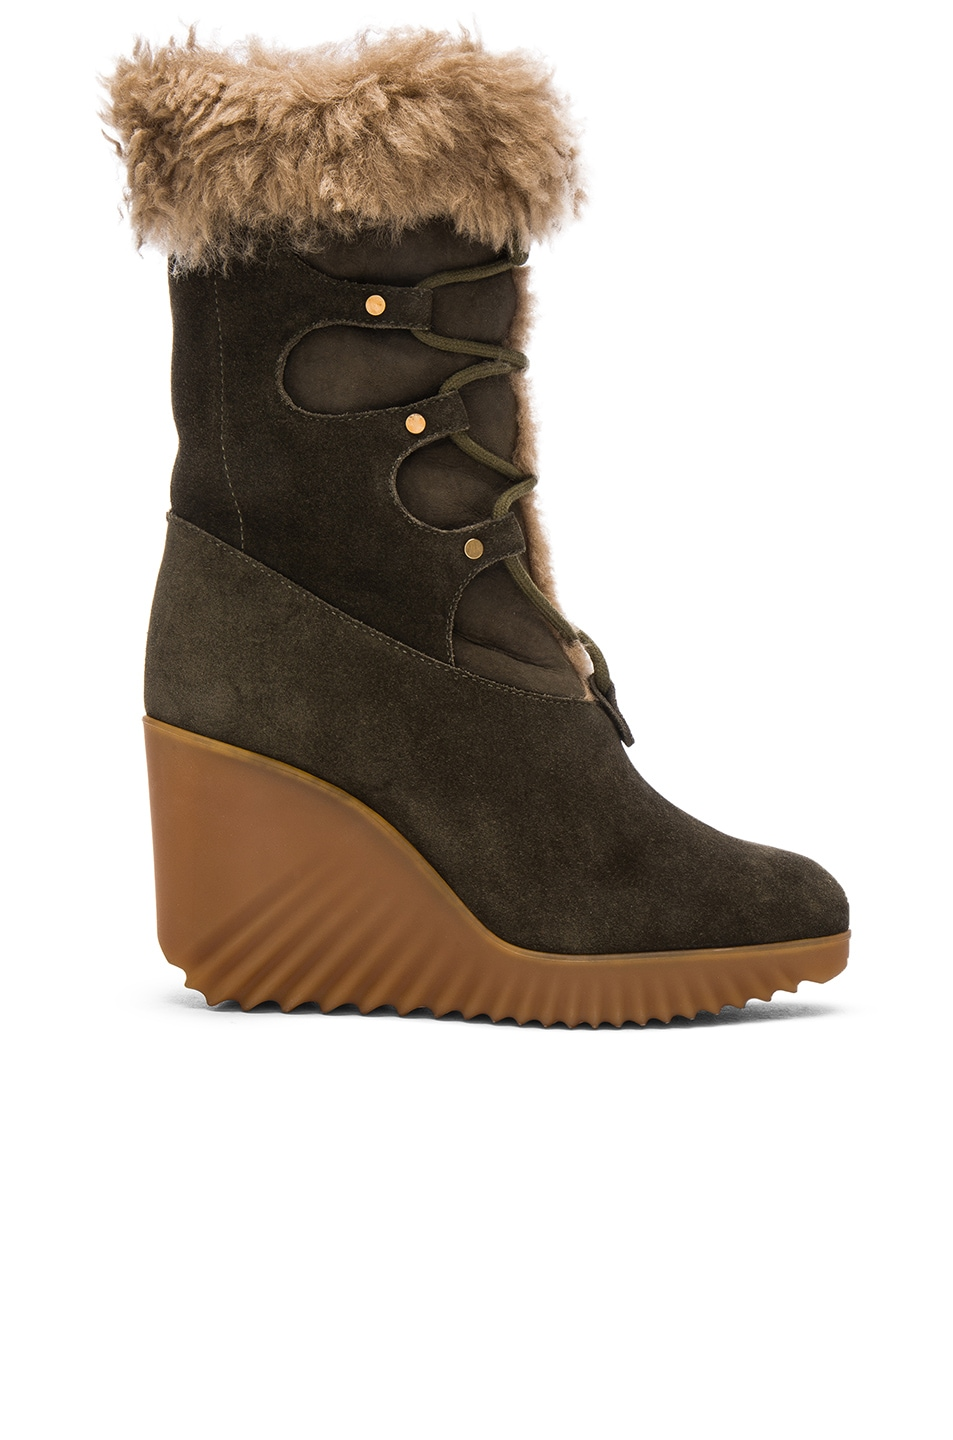 Image 1 of Chloe Suede Foster Wedge Boots in Dark Khaki